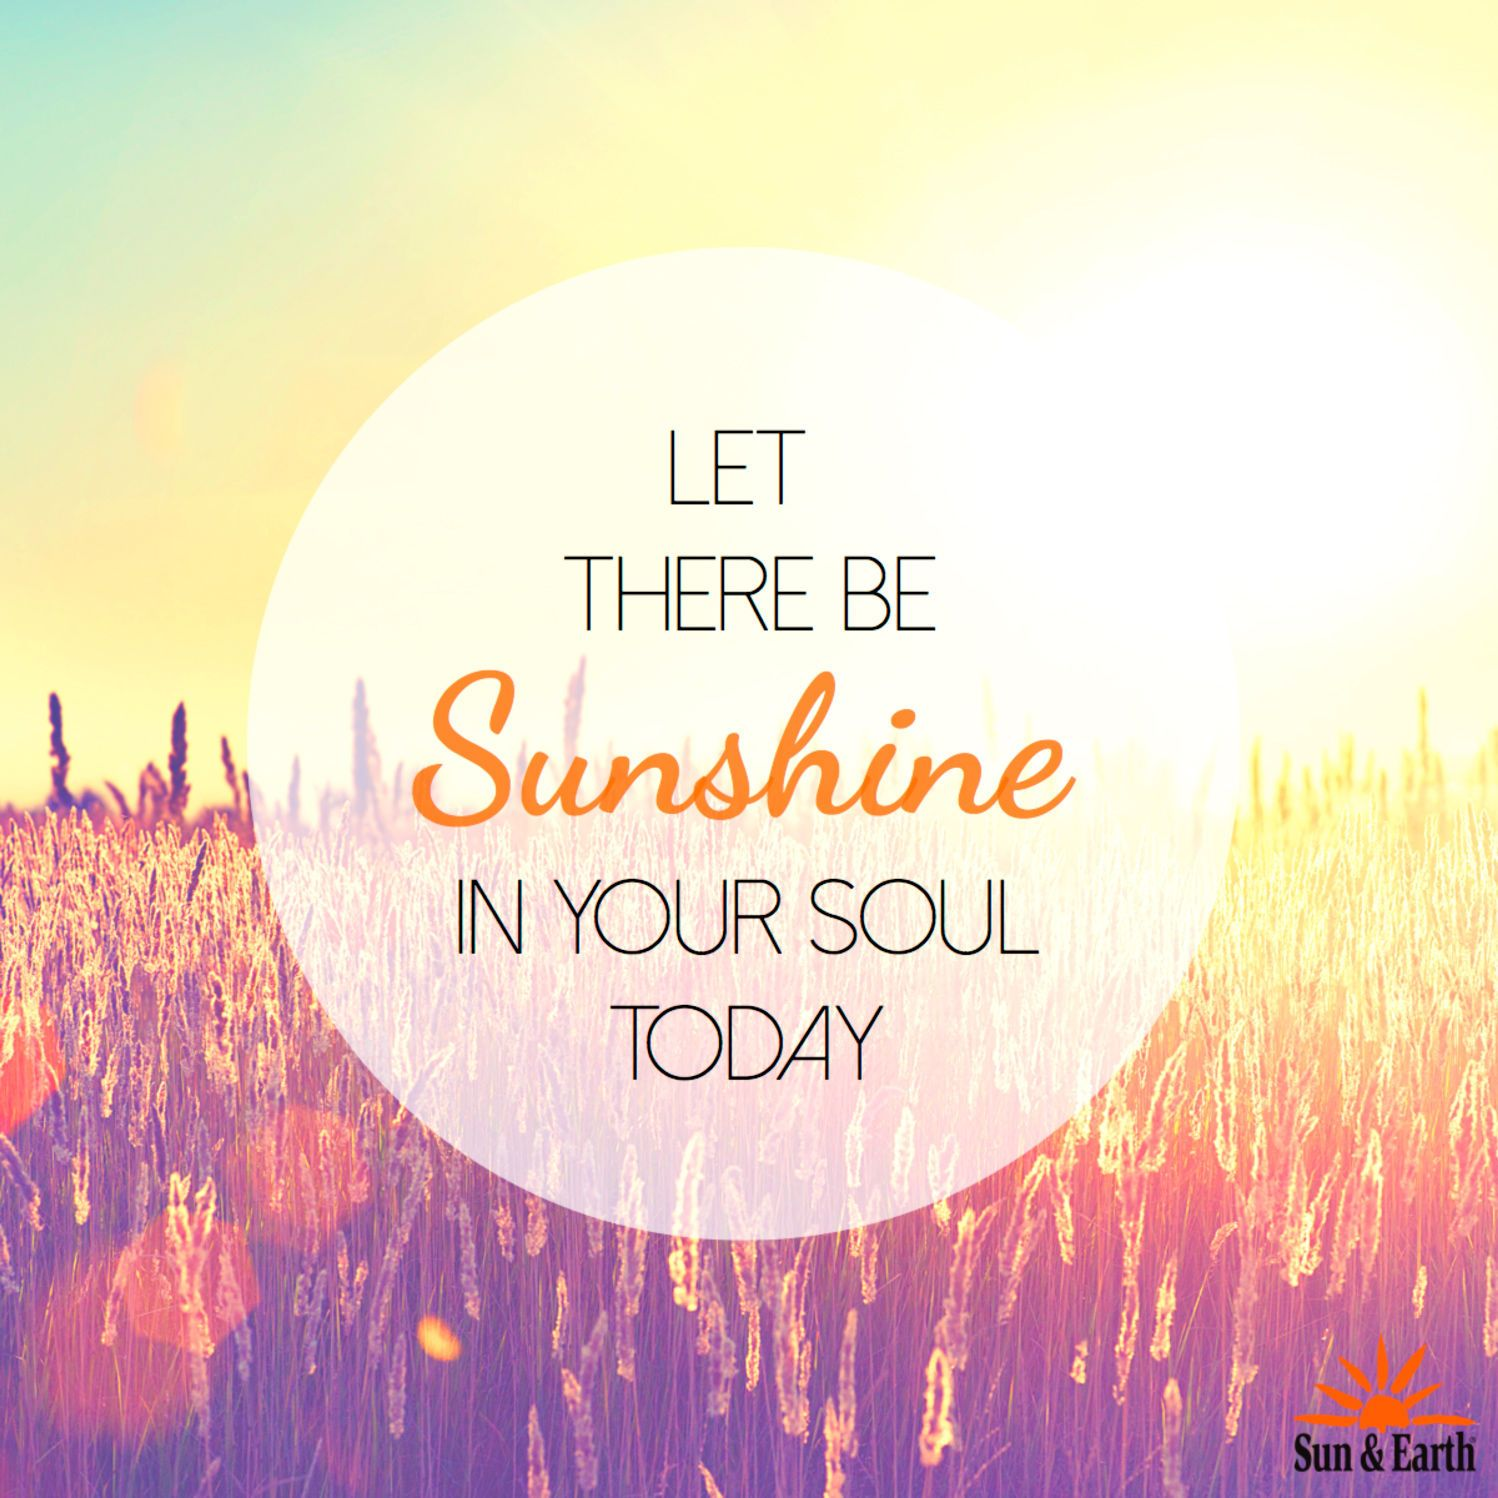 Quotes On Morning Wishes: Sonshine In Your Soul. He Brought Sunshine To My Heart